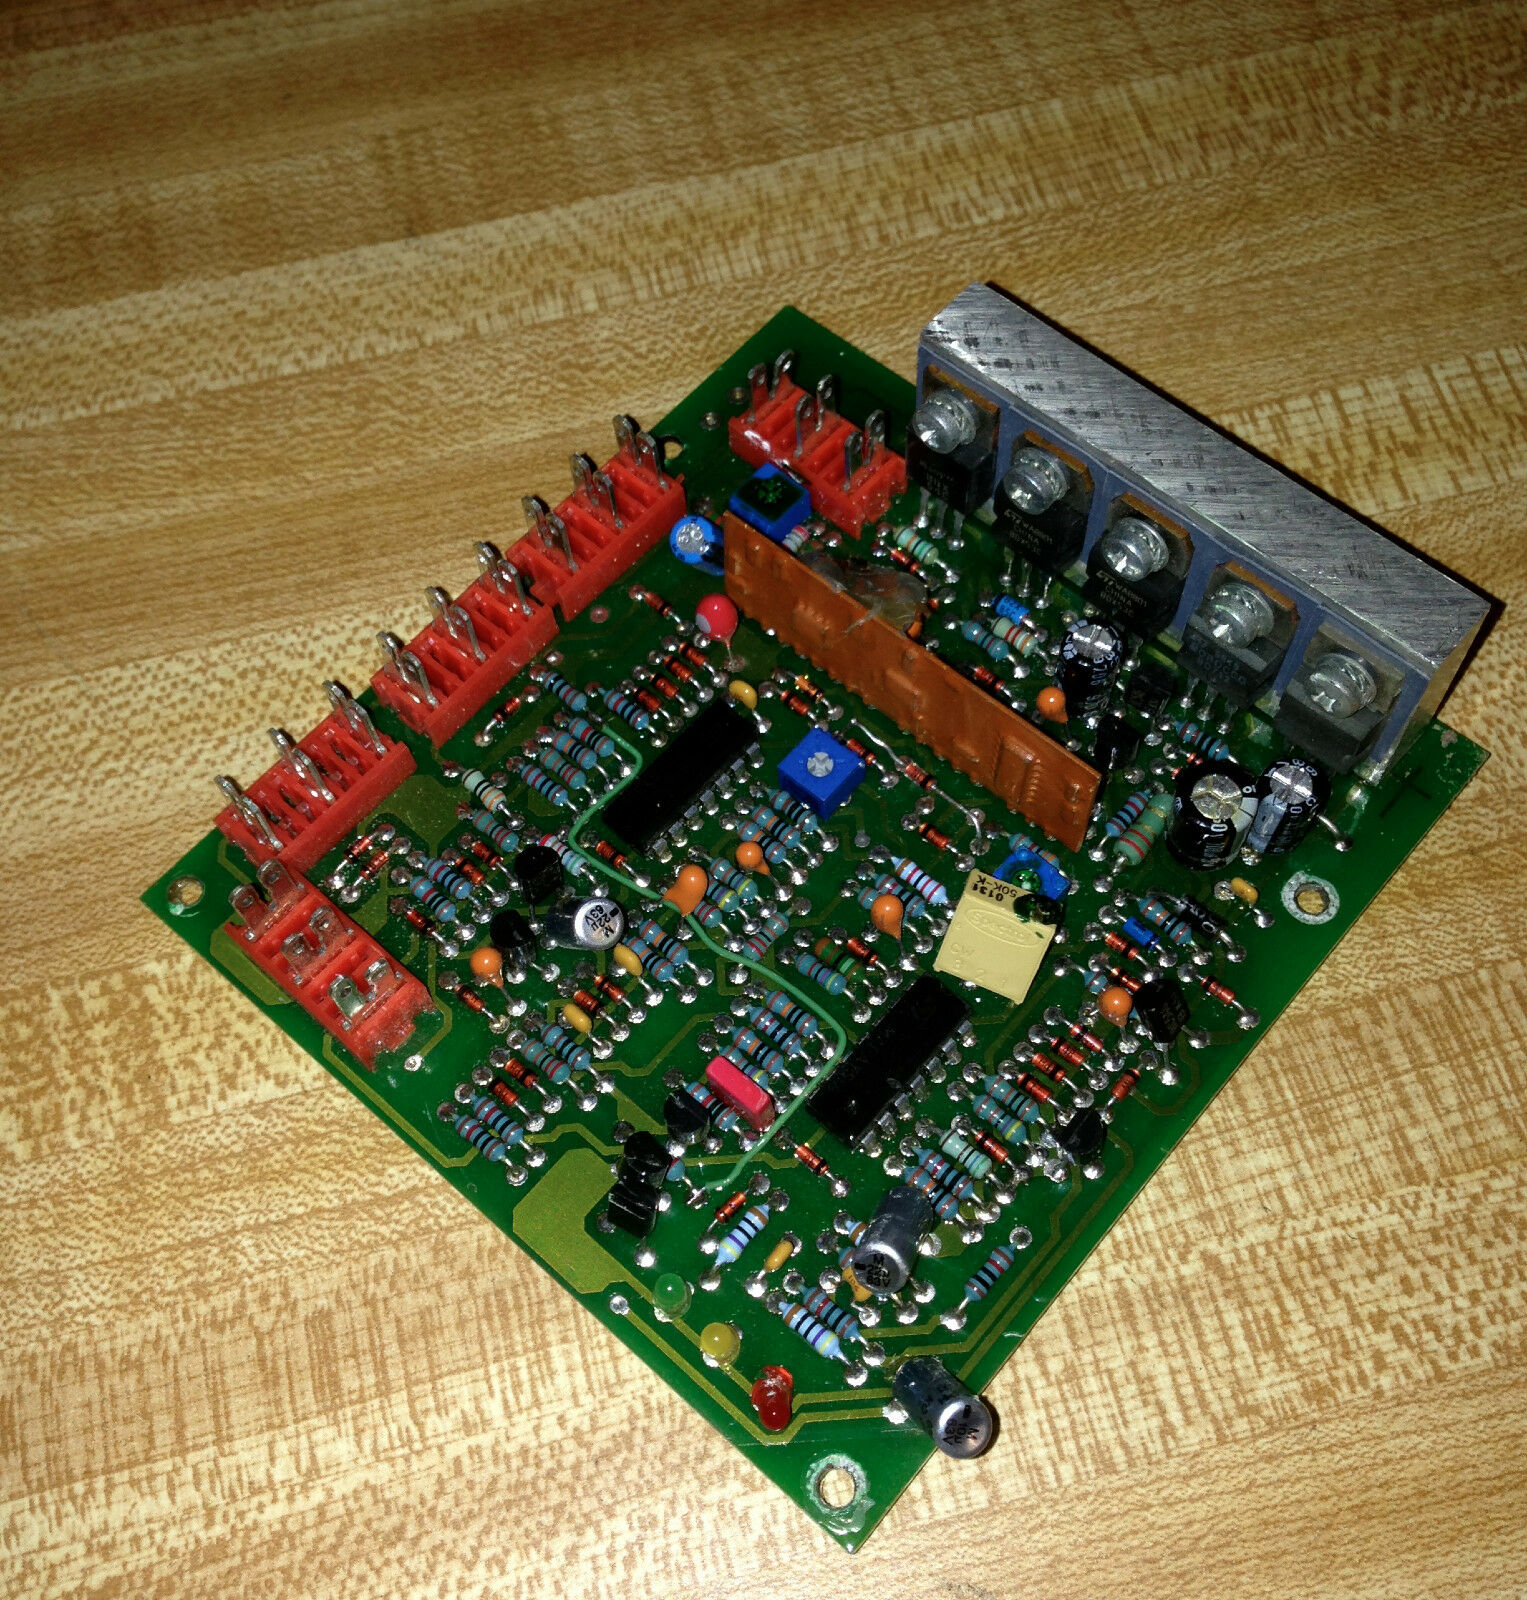 UNKNOWN BRAND NAME CIRCUIT BOARD CARD H3435 H-3435 FCS-1147J FCS1147J